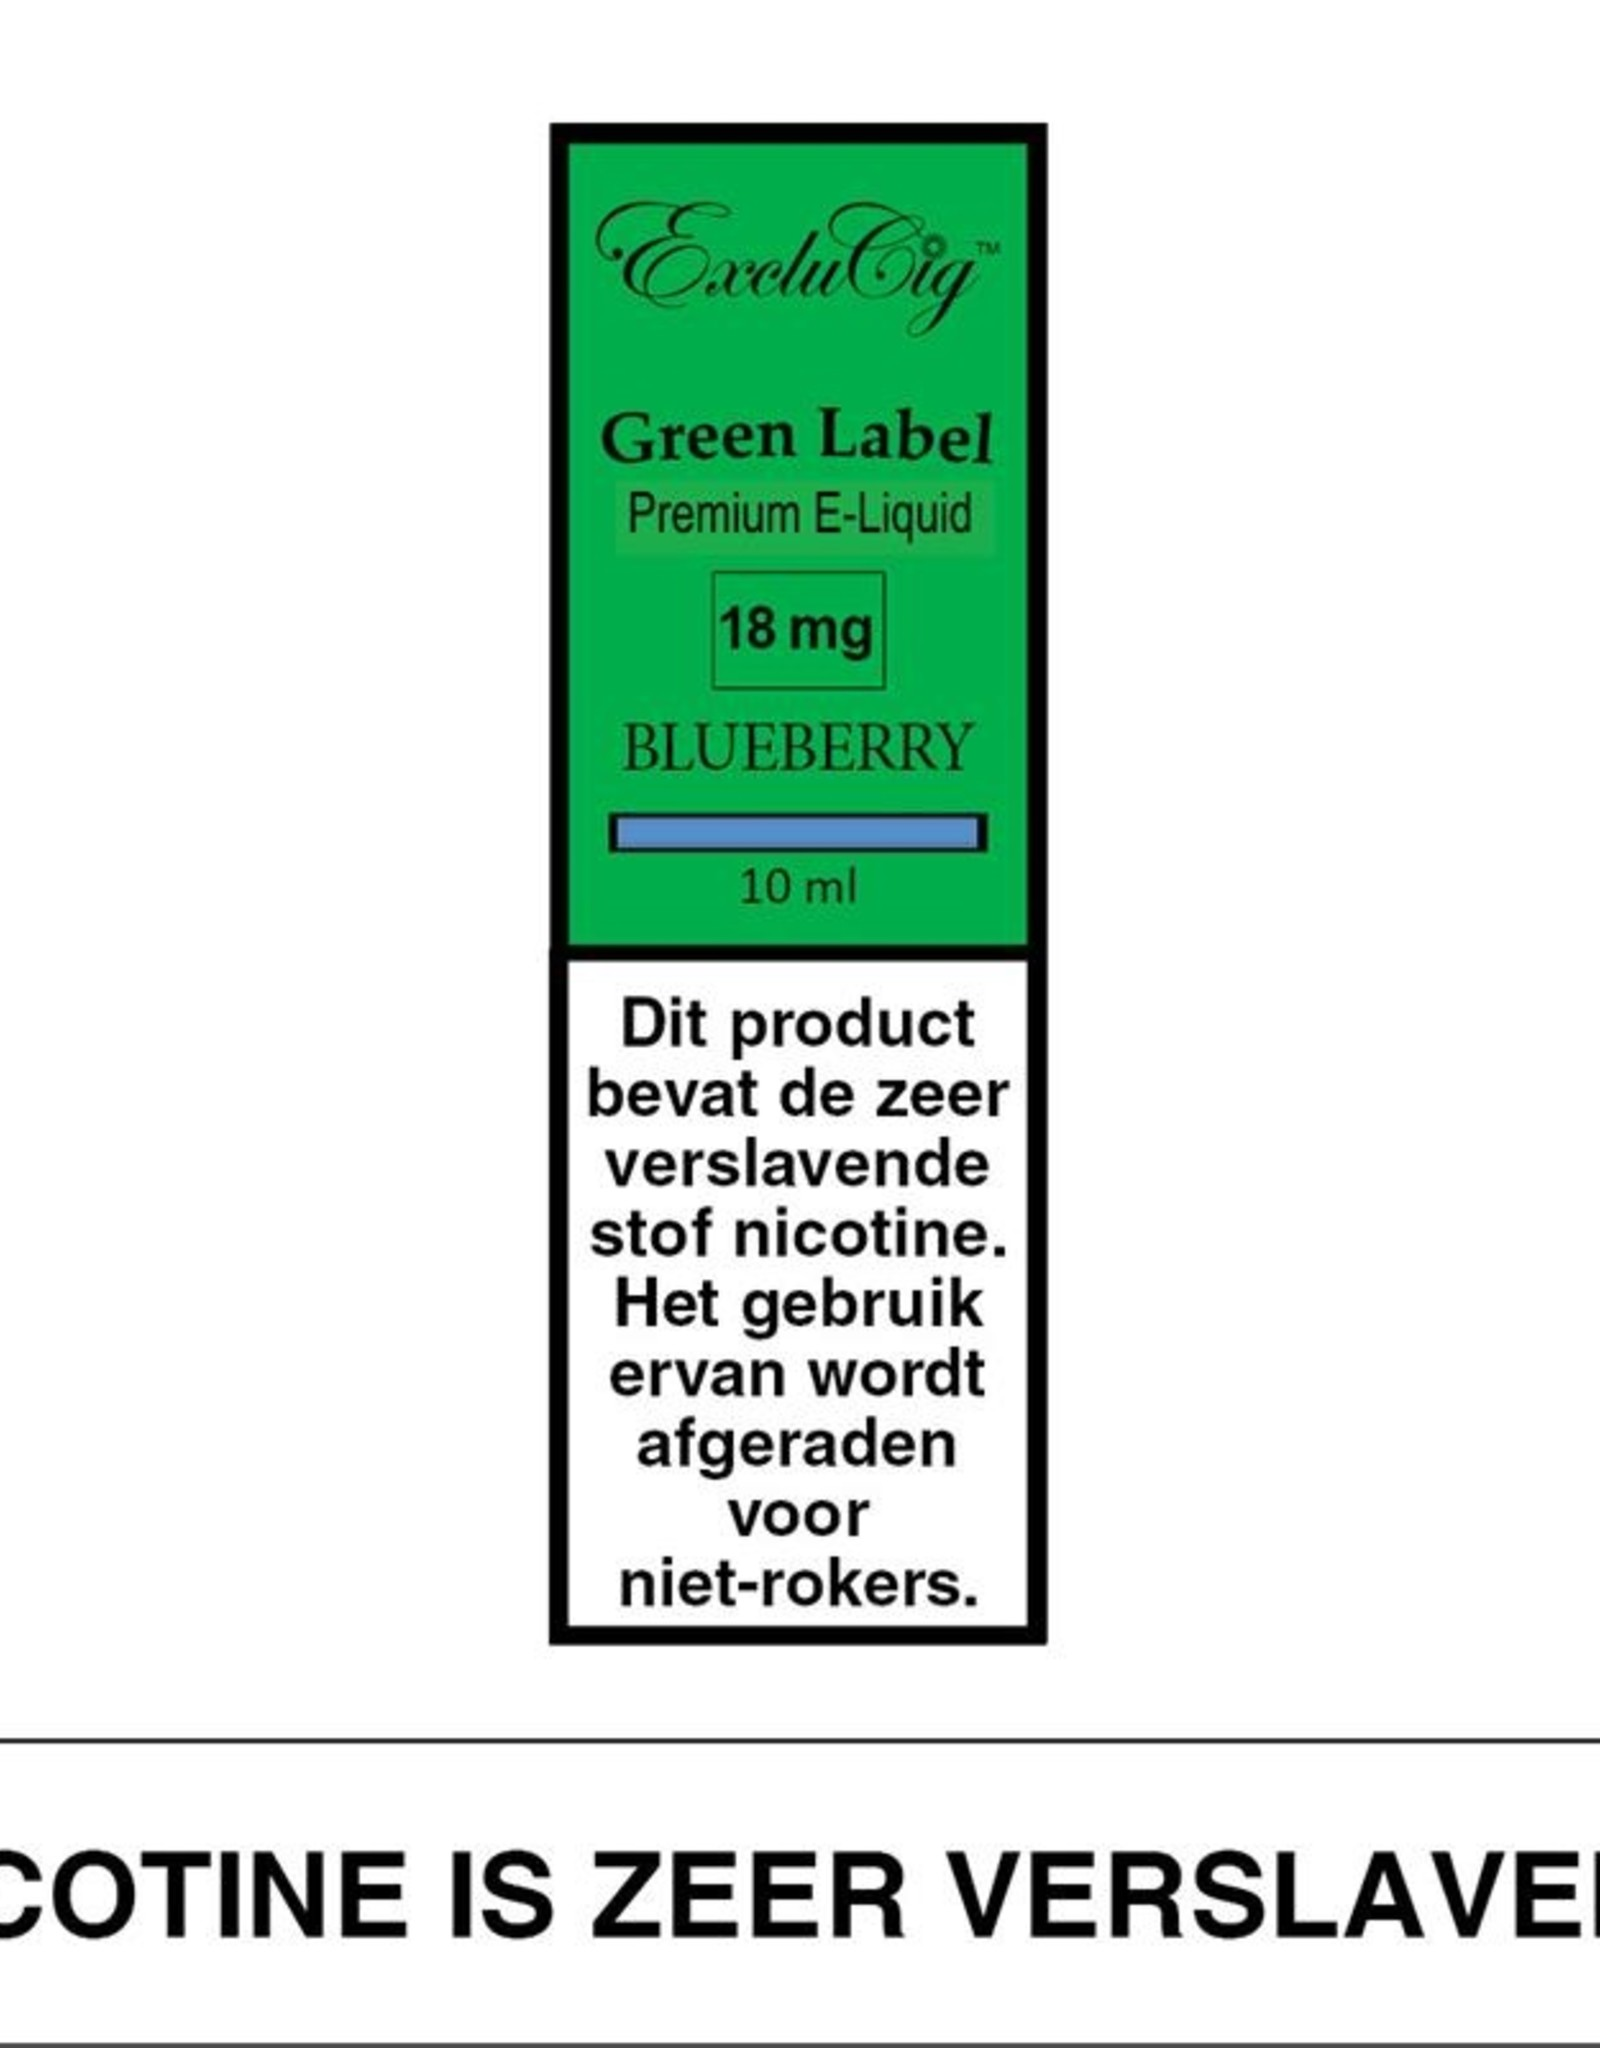 Exclucig Exclucig Green Label E-liquid Blueberry 18 mg Nicotine